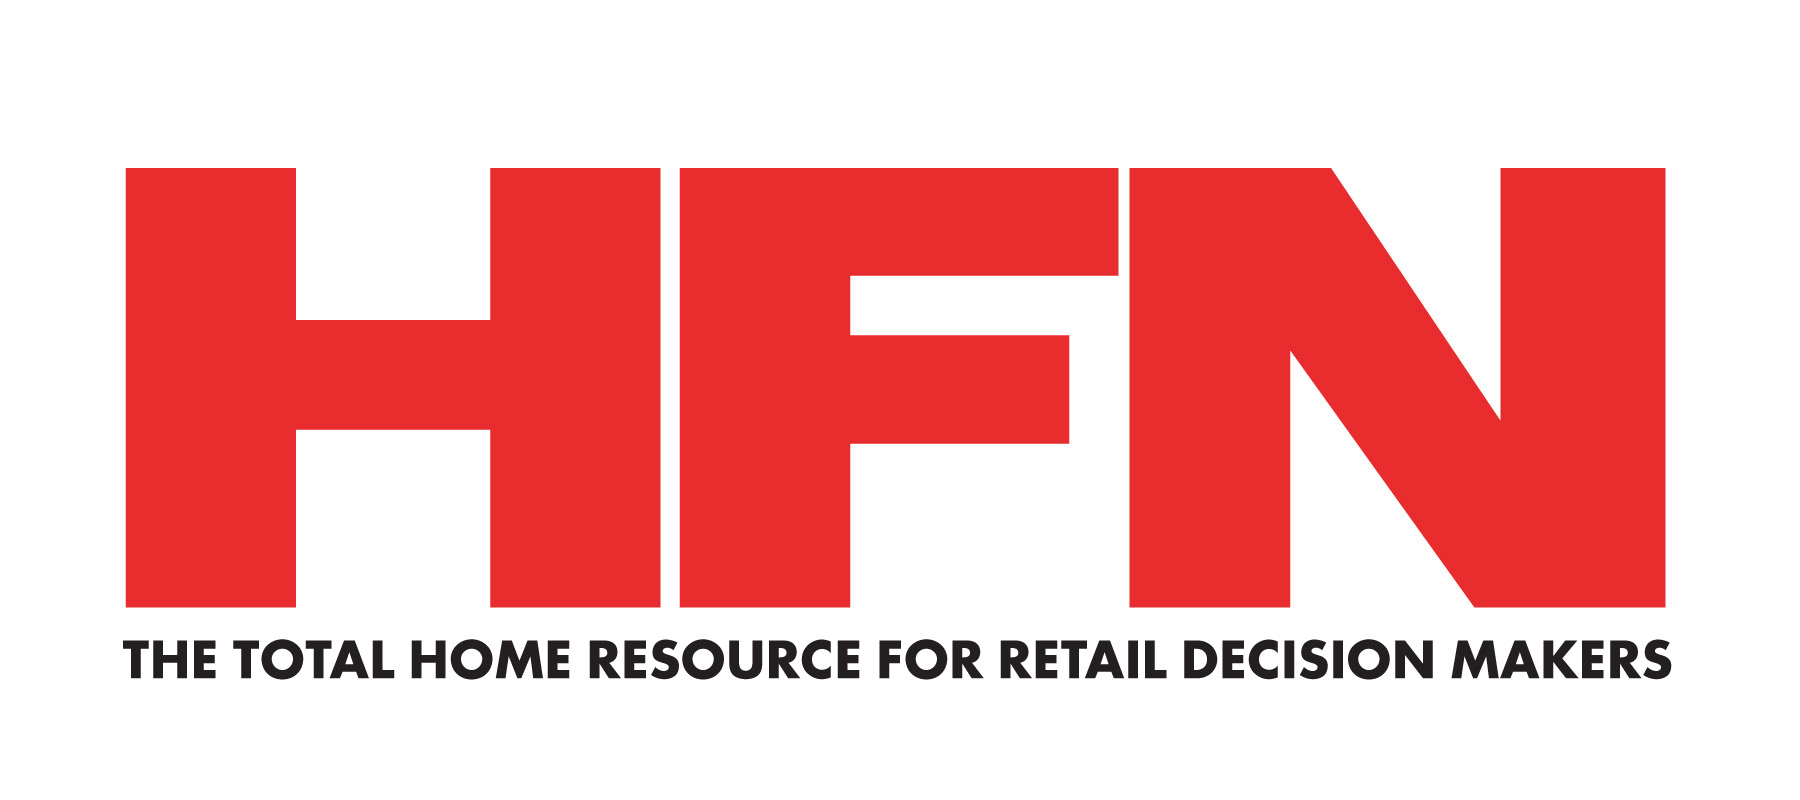 HFN_NewLogo2016_Red_wTag.jpg